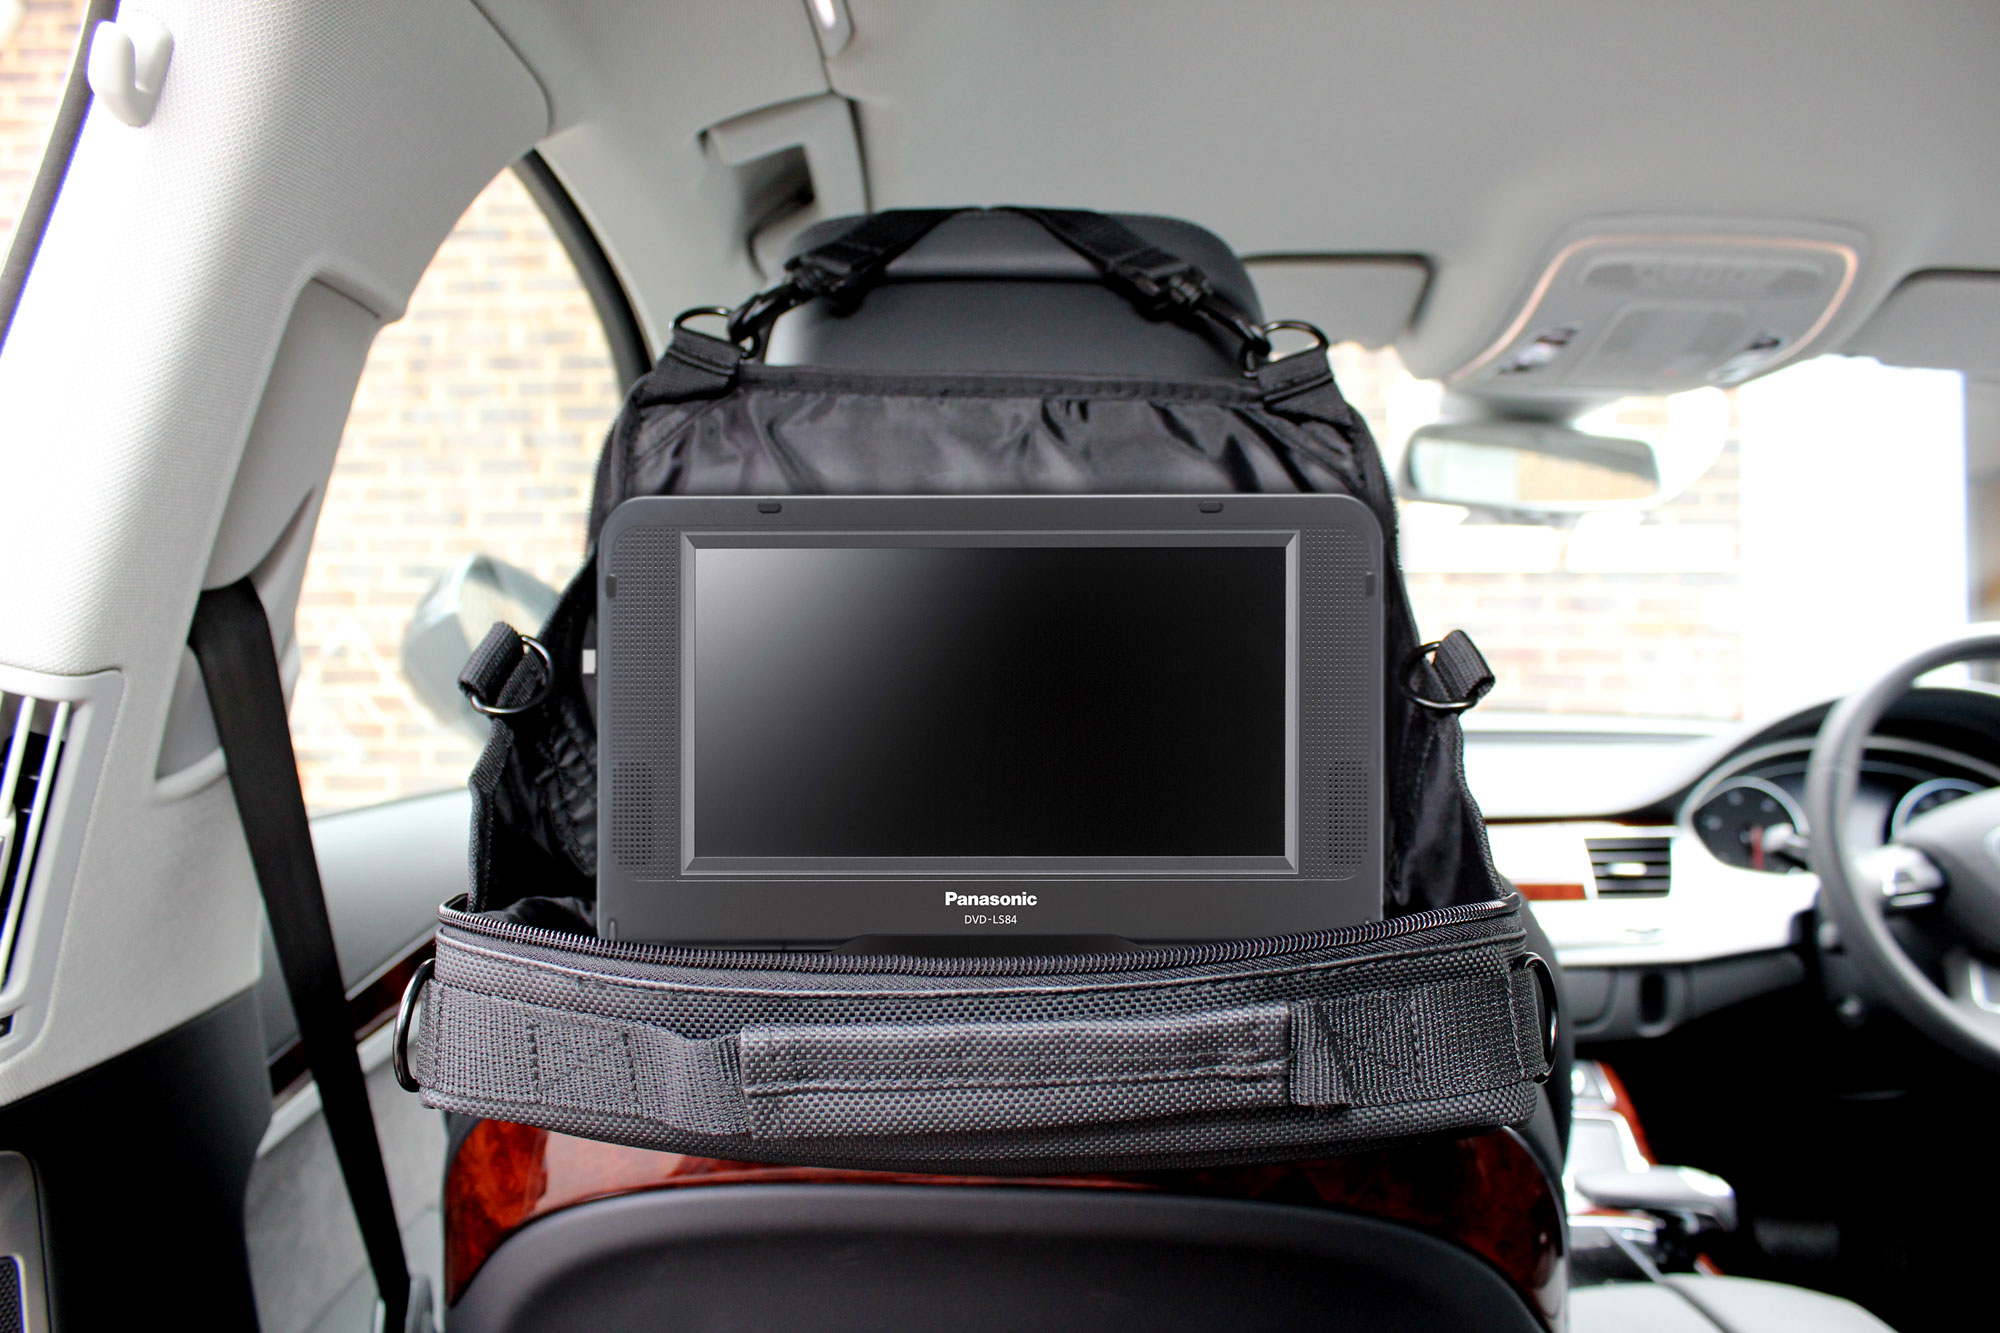 Portable DVD Player Bag/Case/Holder w/ Car Headrest Mount For Panasonic DVD-LS50 Preview